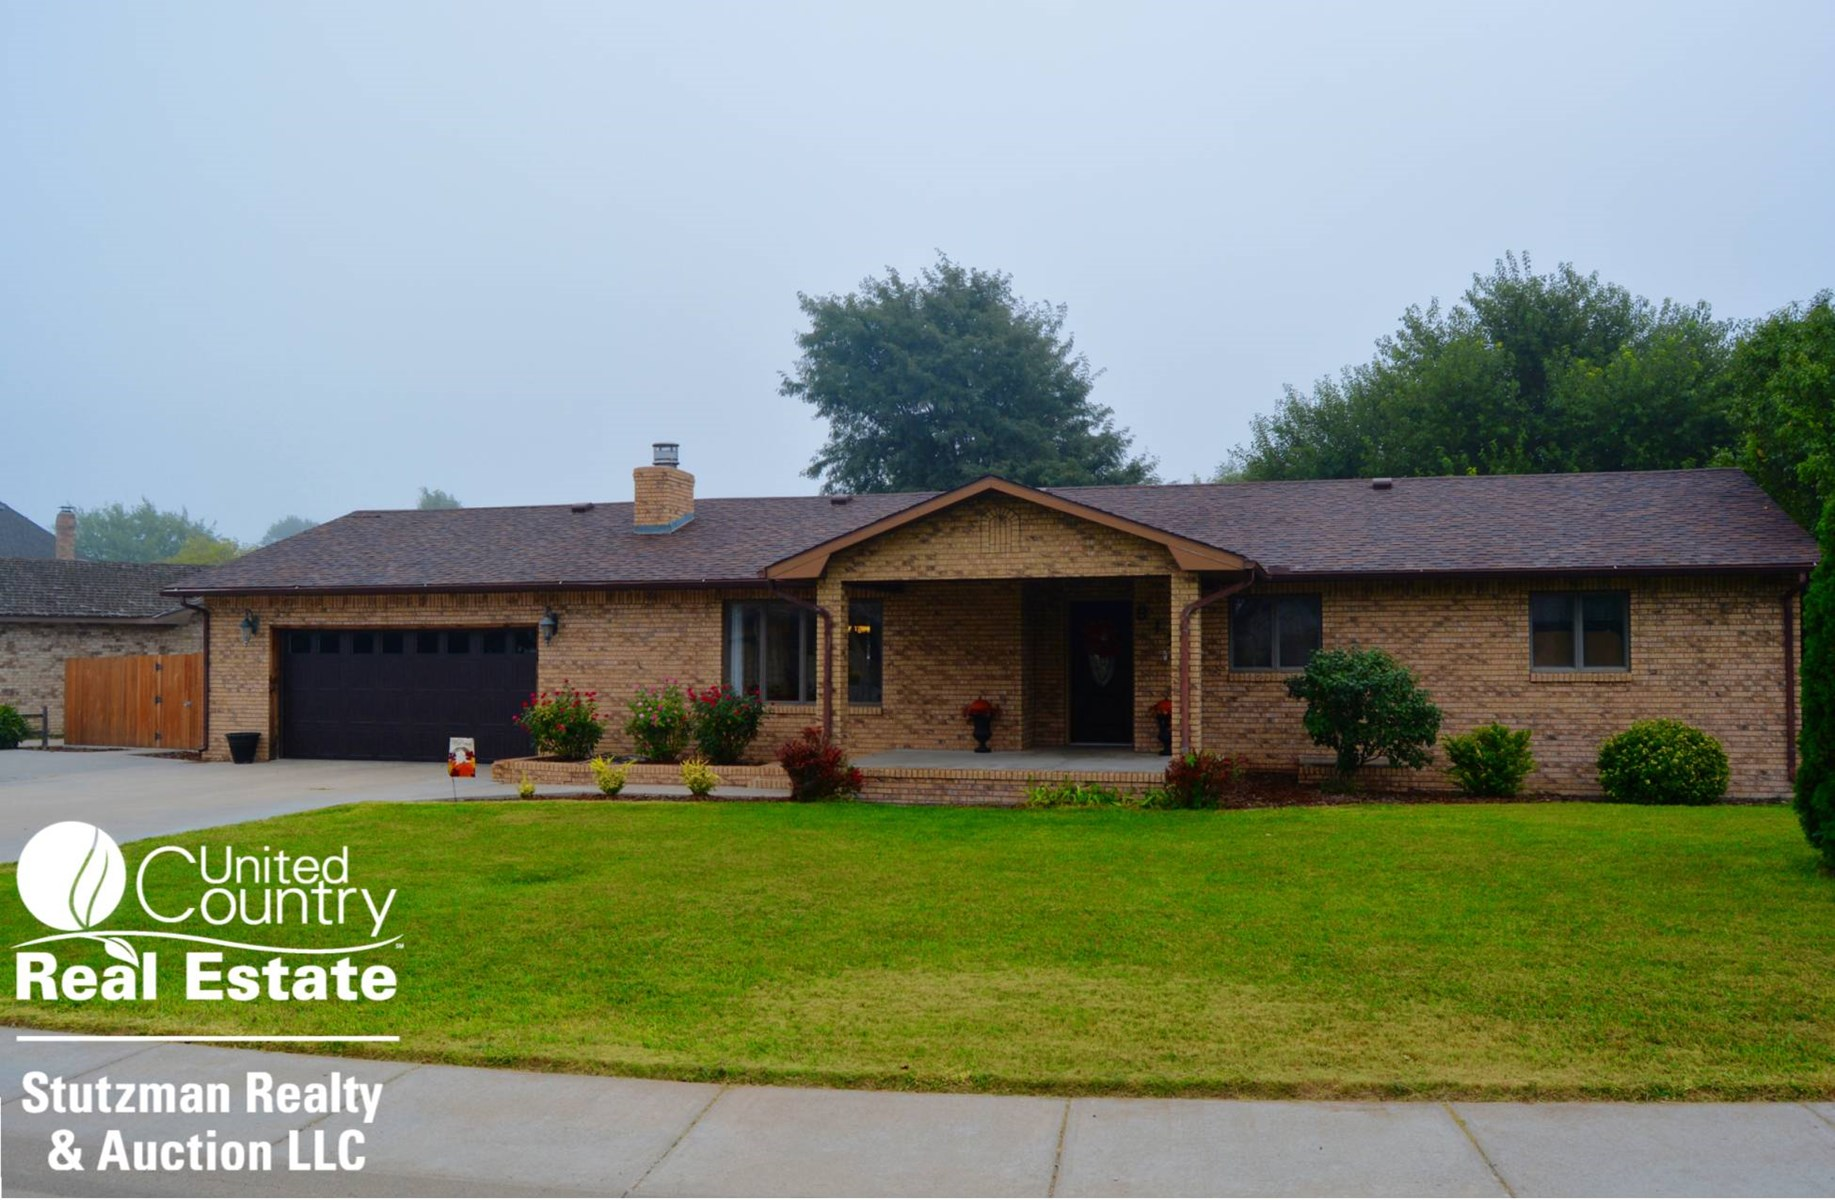 MOVE-IN READY BRICK HOME FOR SALE IN ULYSSES, KANSAS